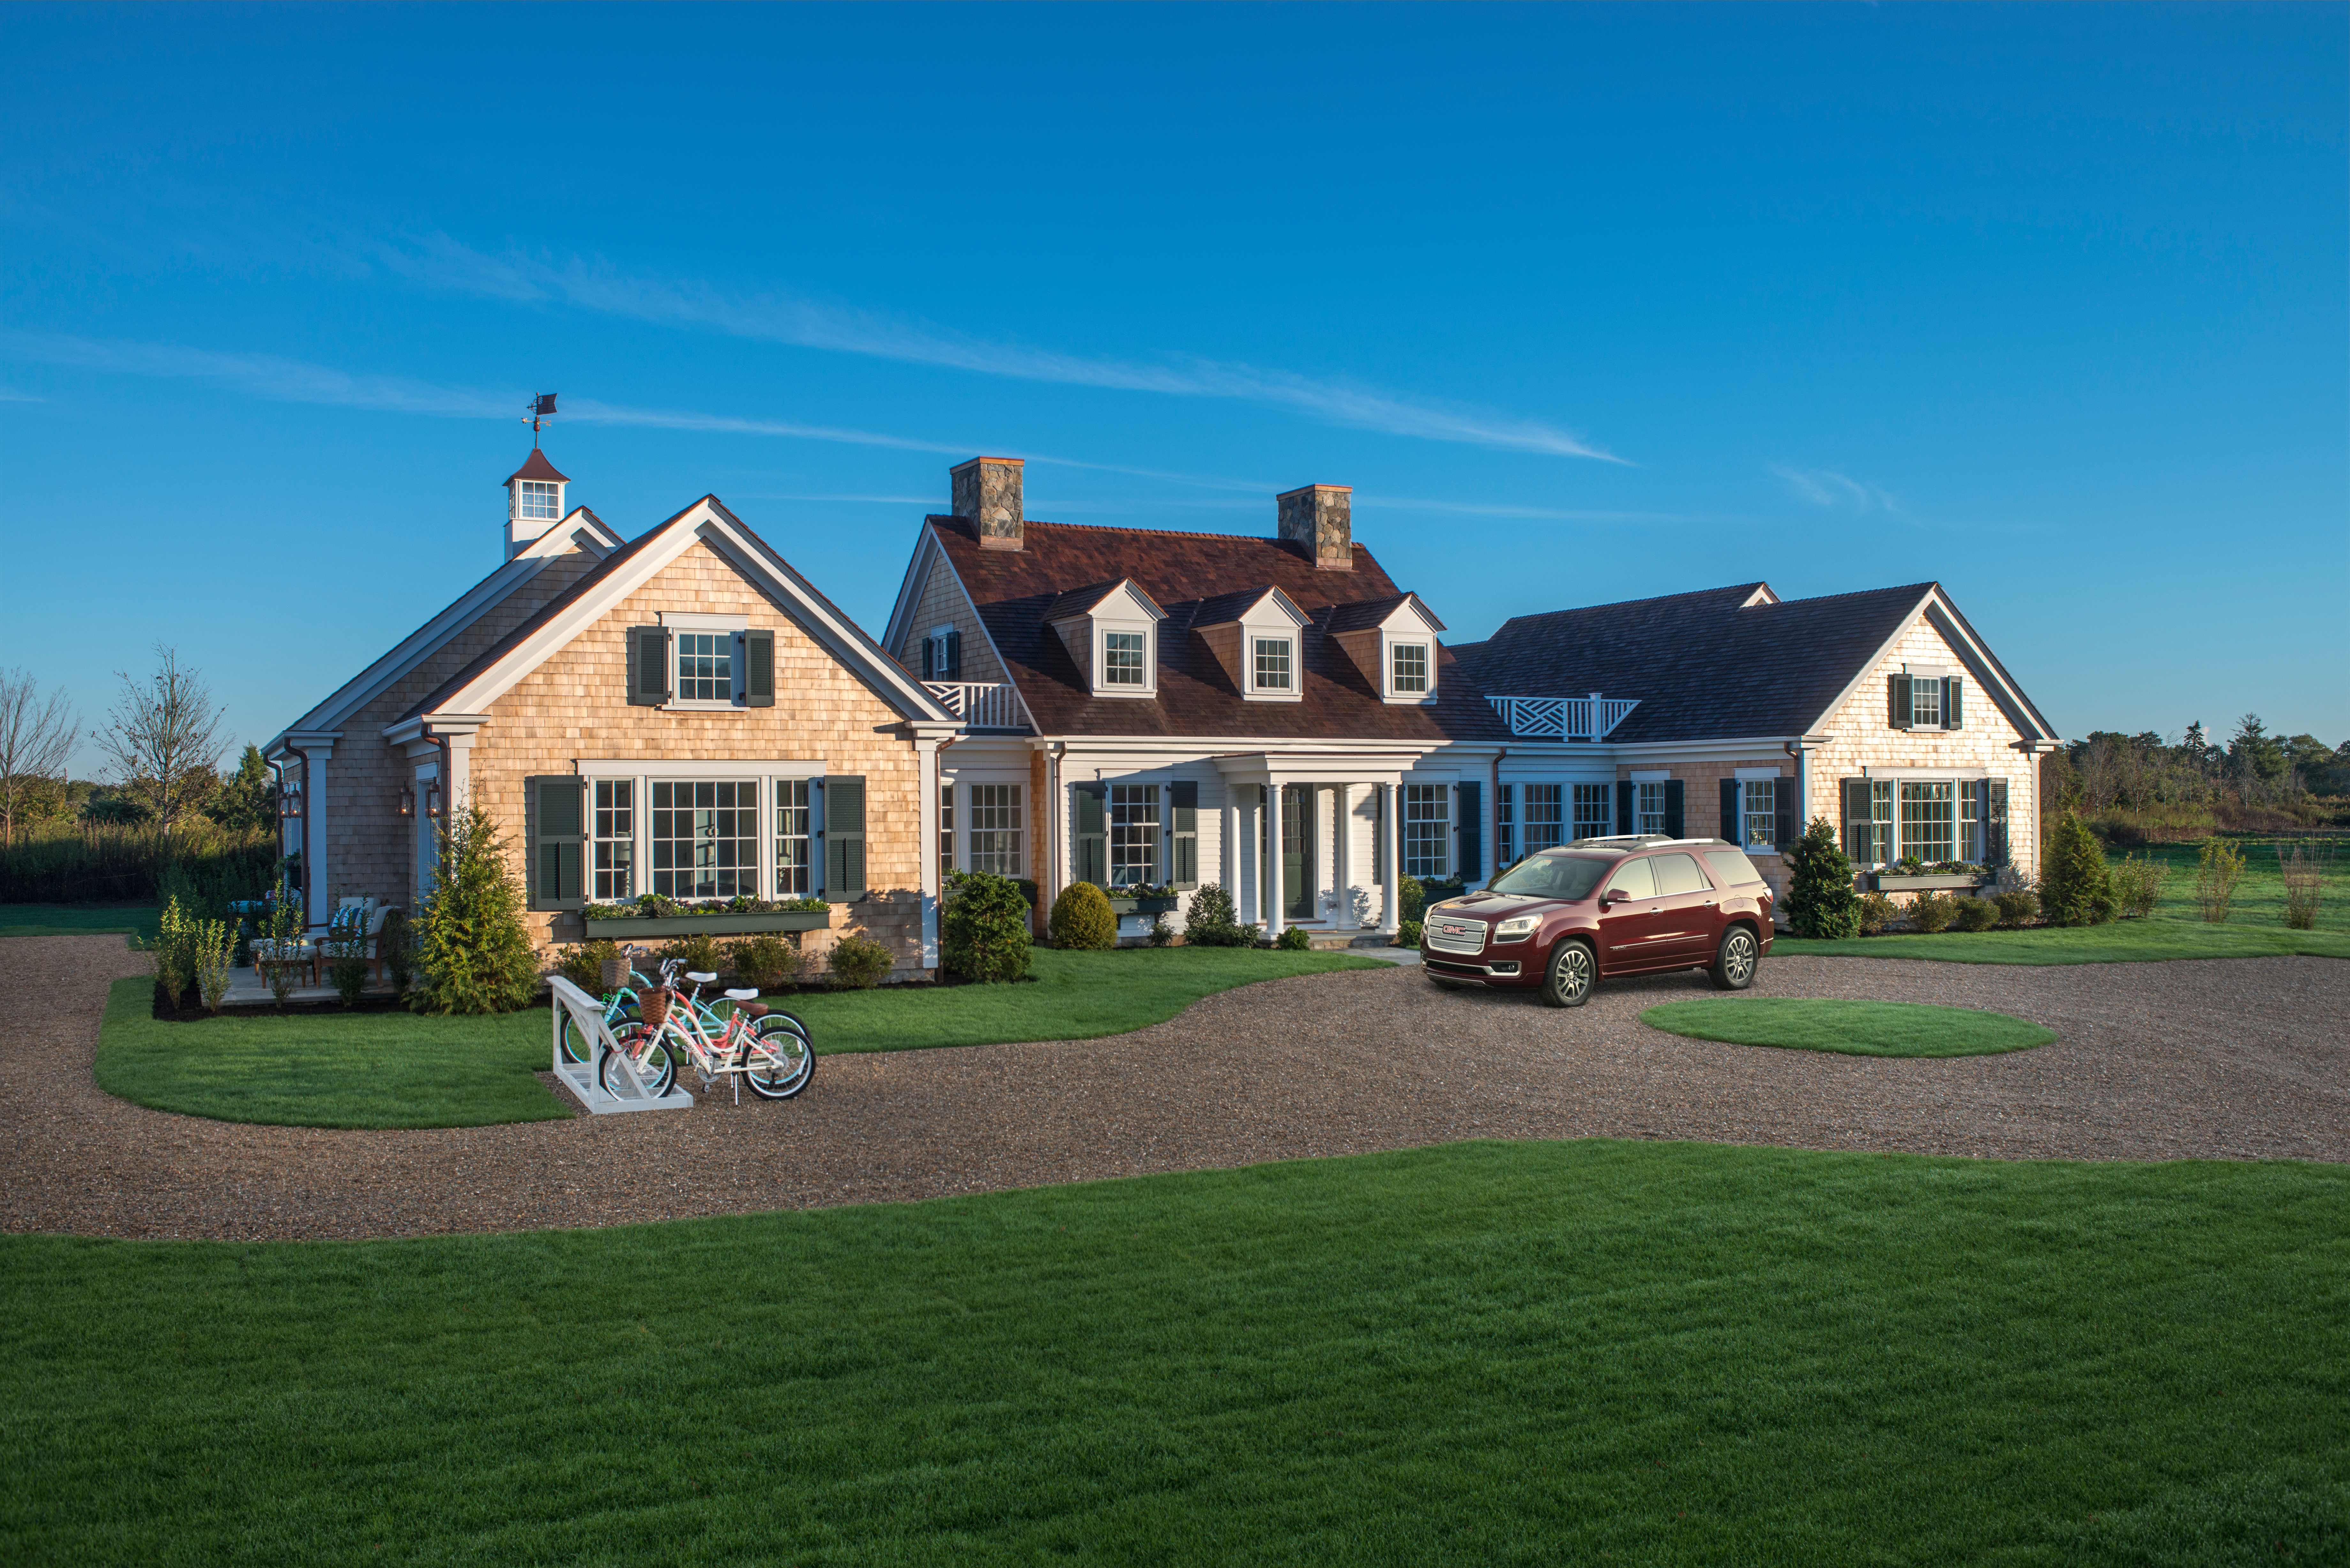 hgtv dream home 2015 makes martha s vineyard the ultimate getaway